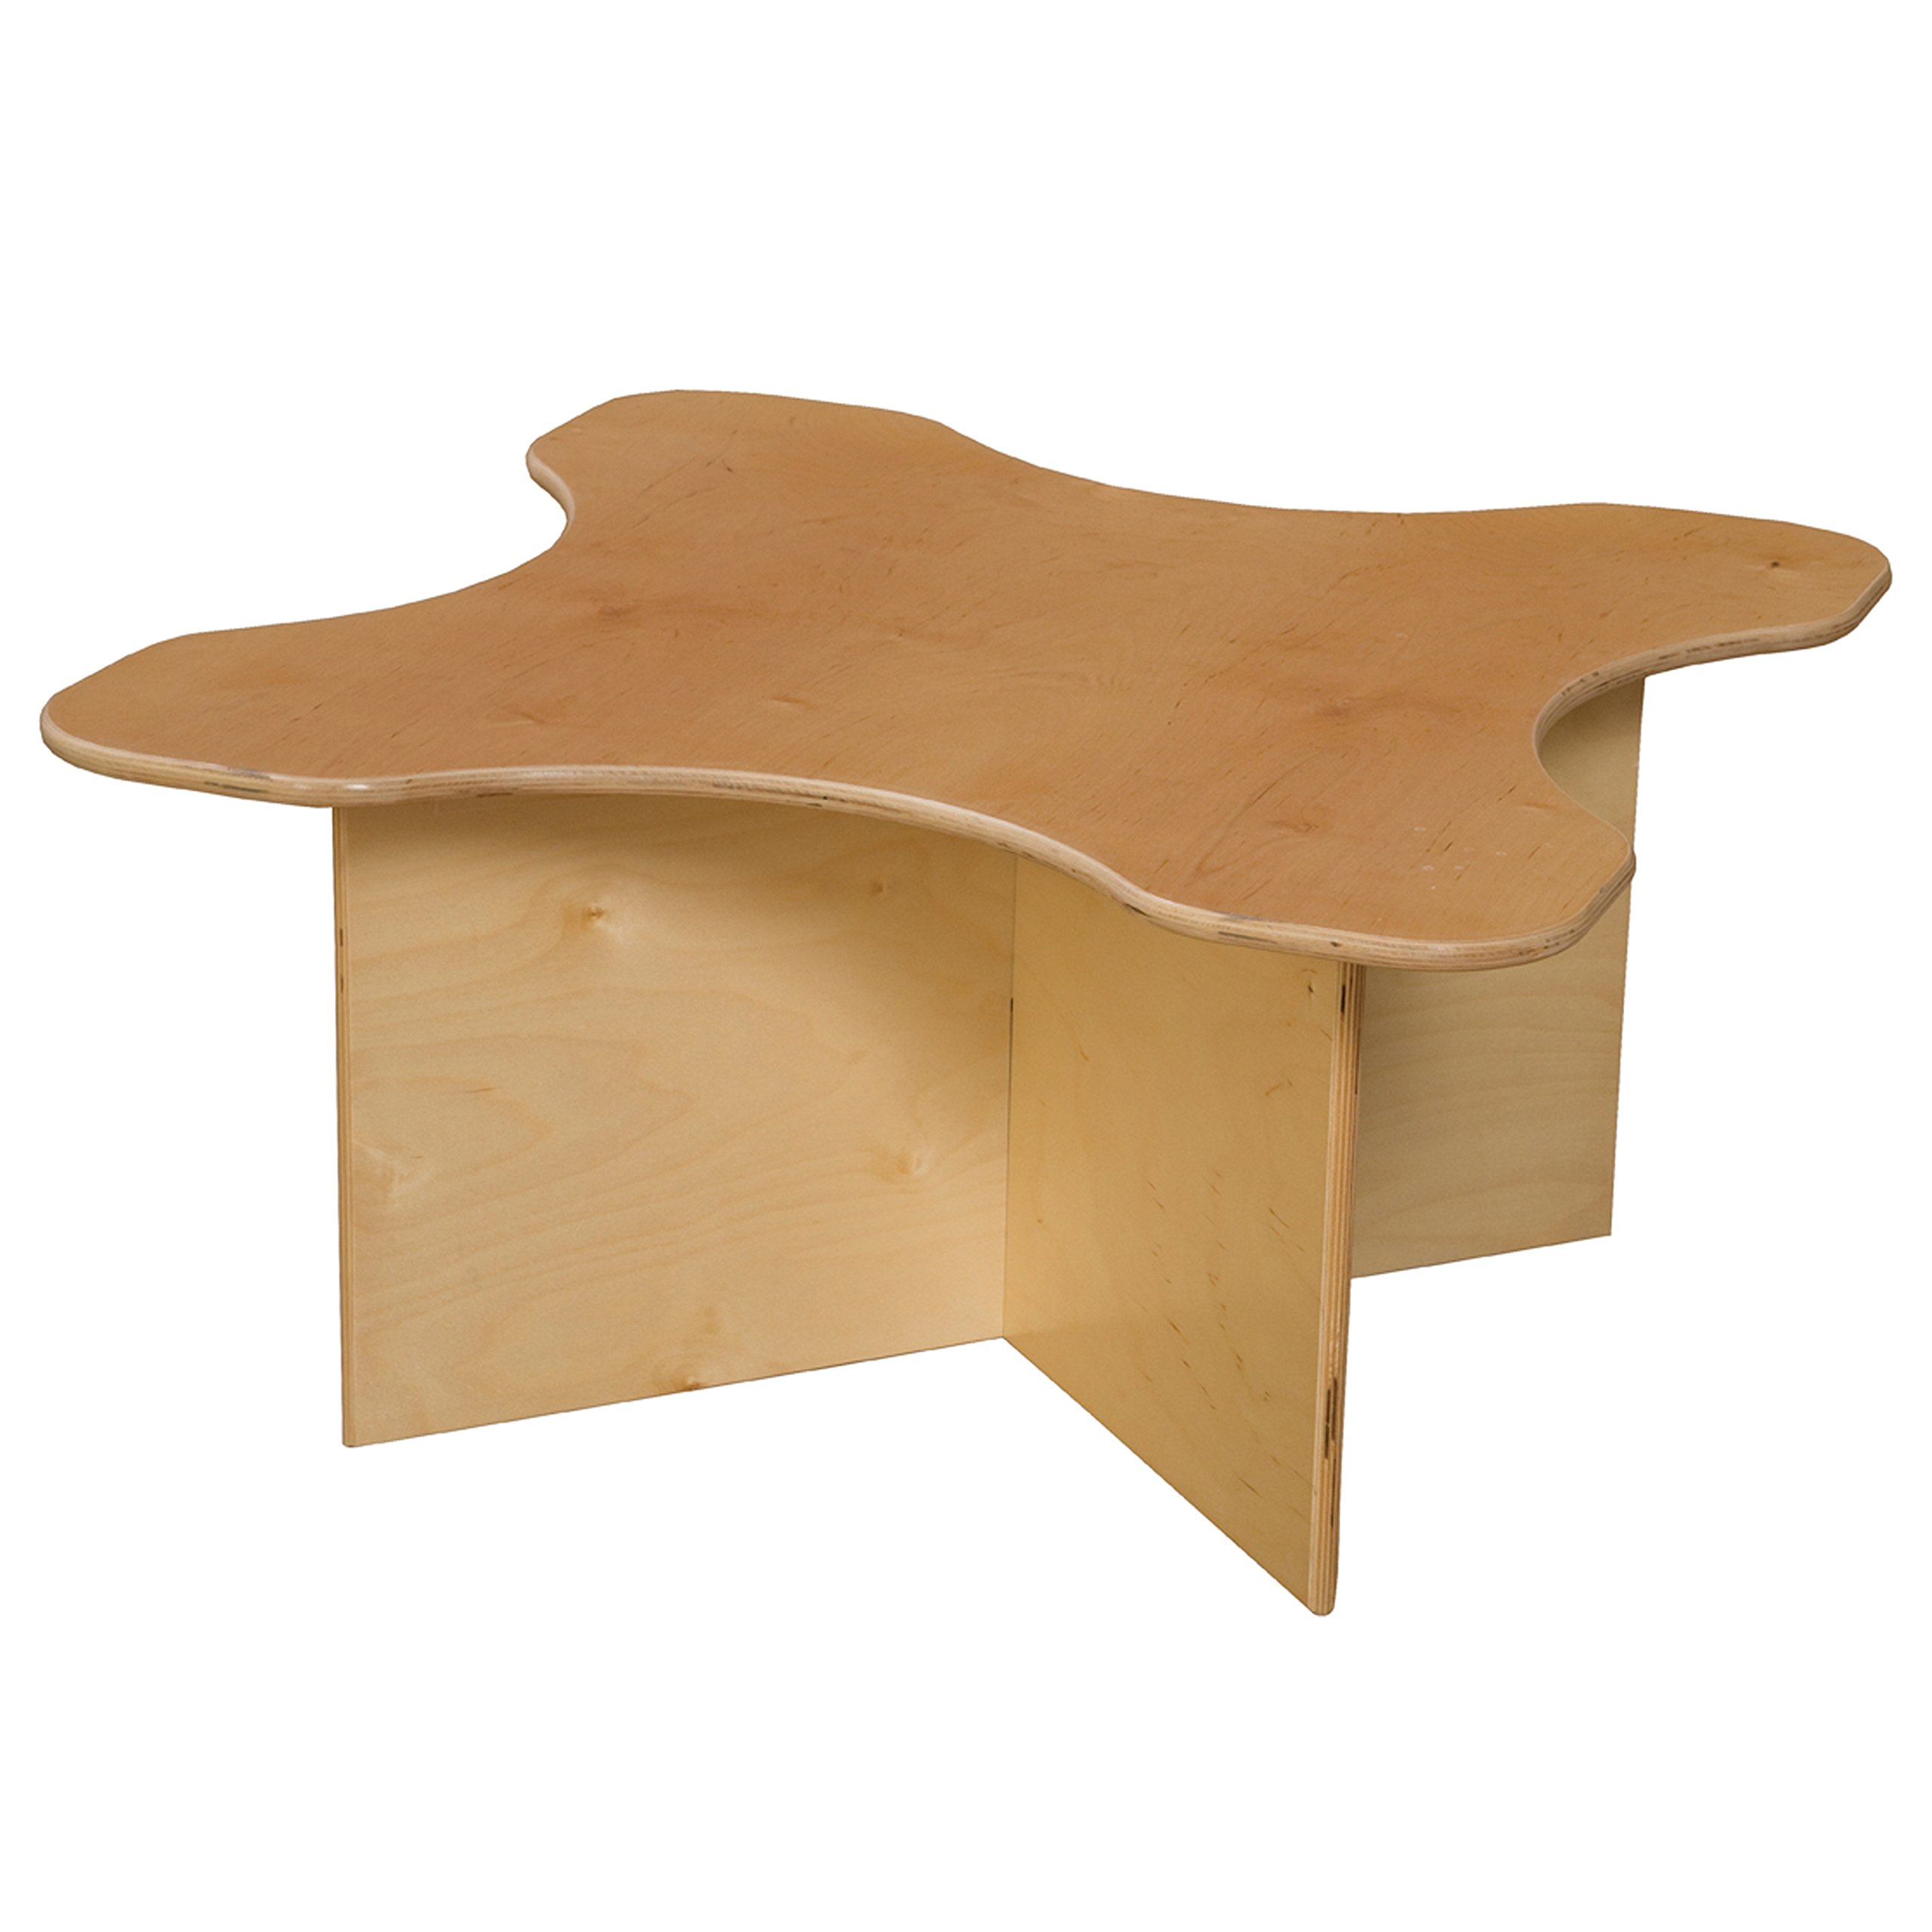 """Wood Designs WD21810 Tot Transition Table, 15 x 30 x 30"""" (H x W x D)"""